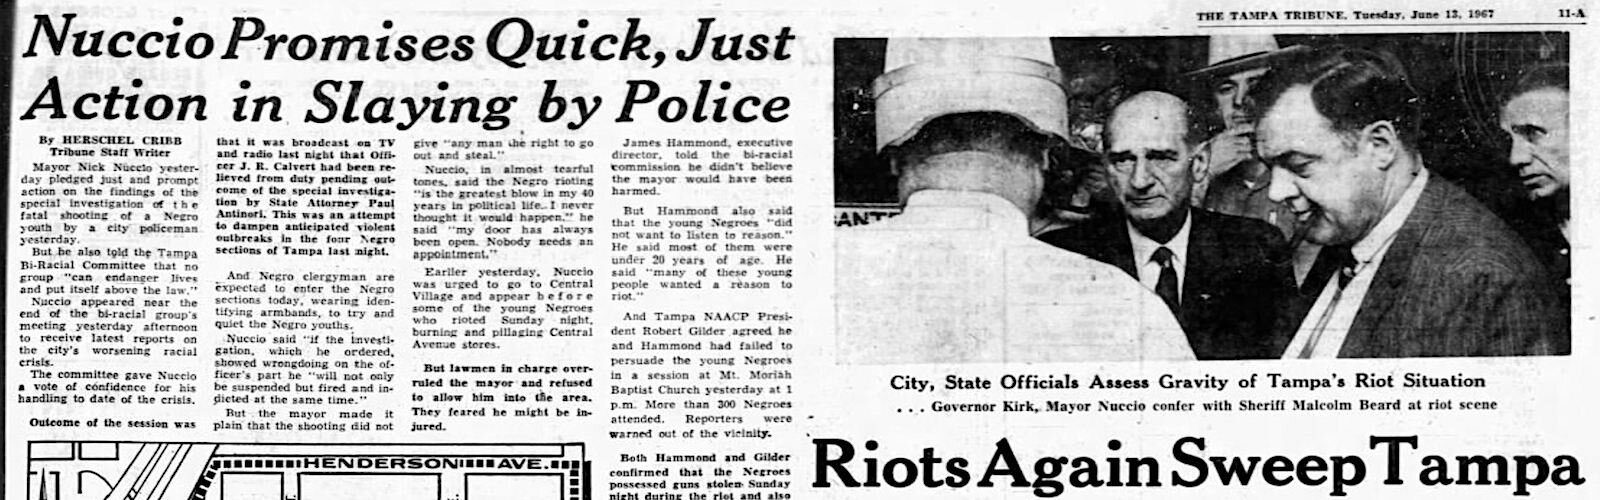 The Tampa Tribune reports on June 1967 riots in Tampa.